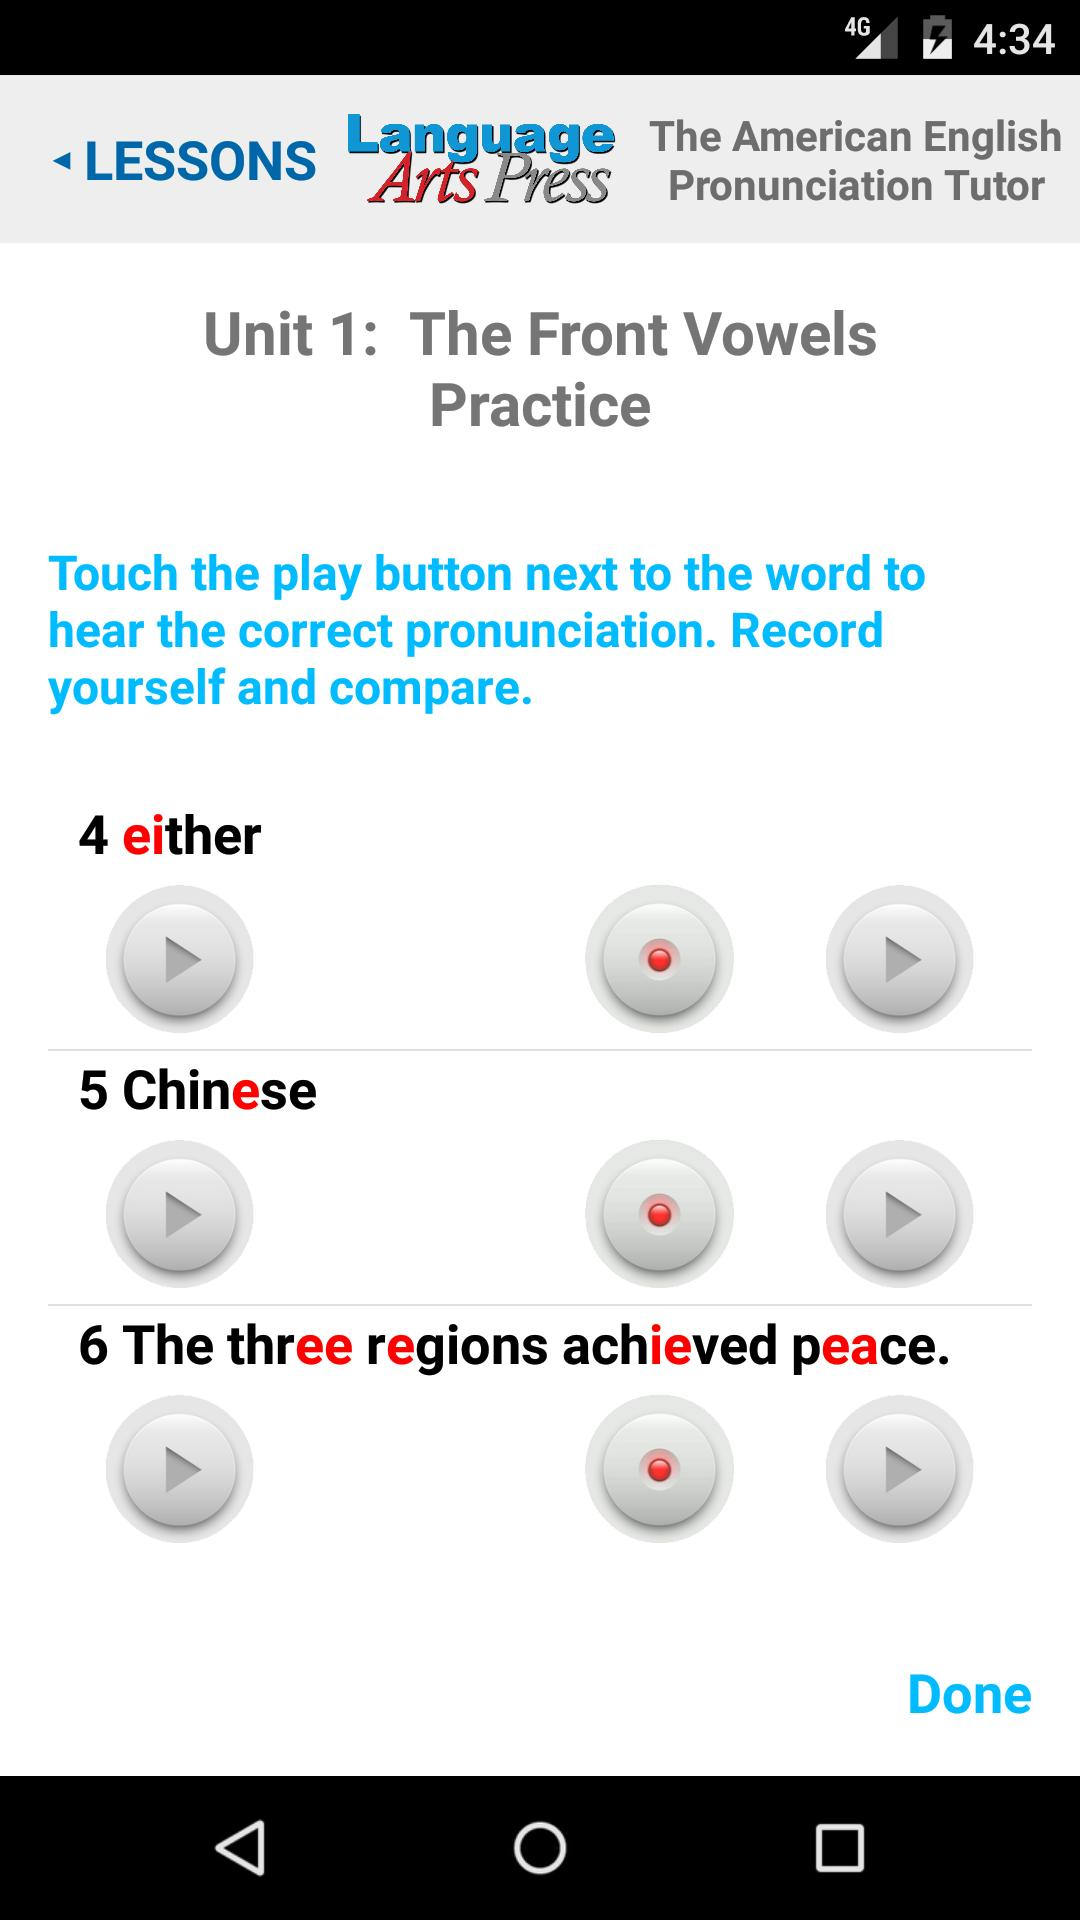 English Pronunciation Tutor for Android - APK Download